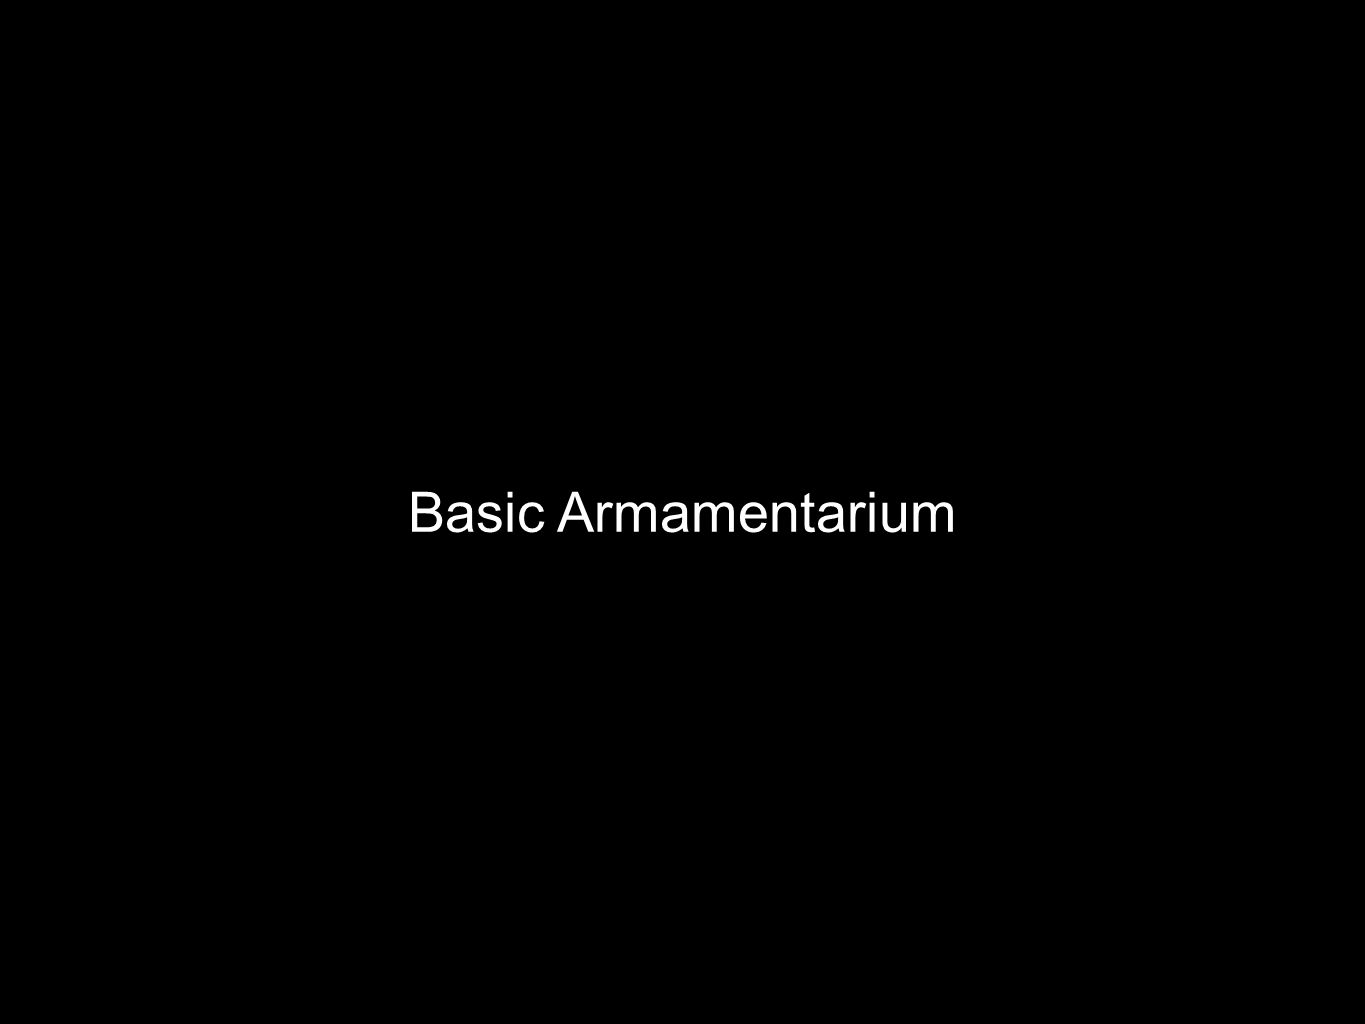 Basic Armamentarium